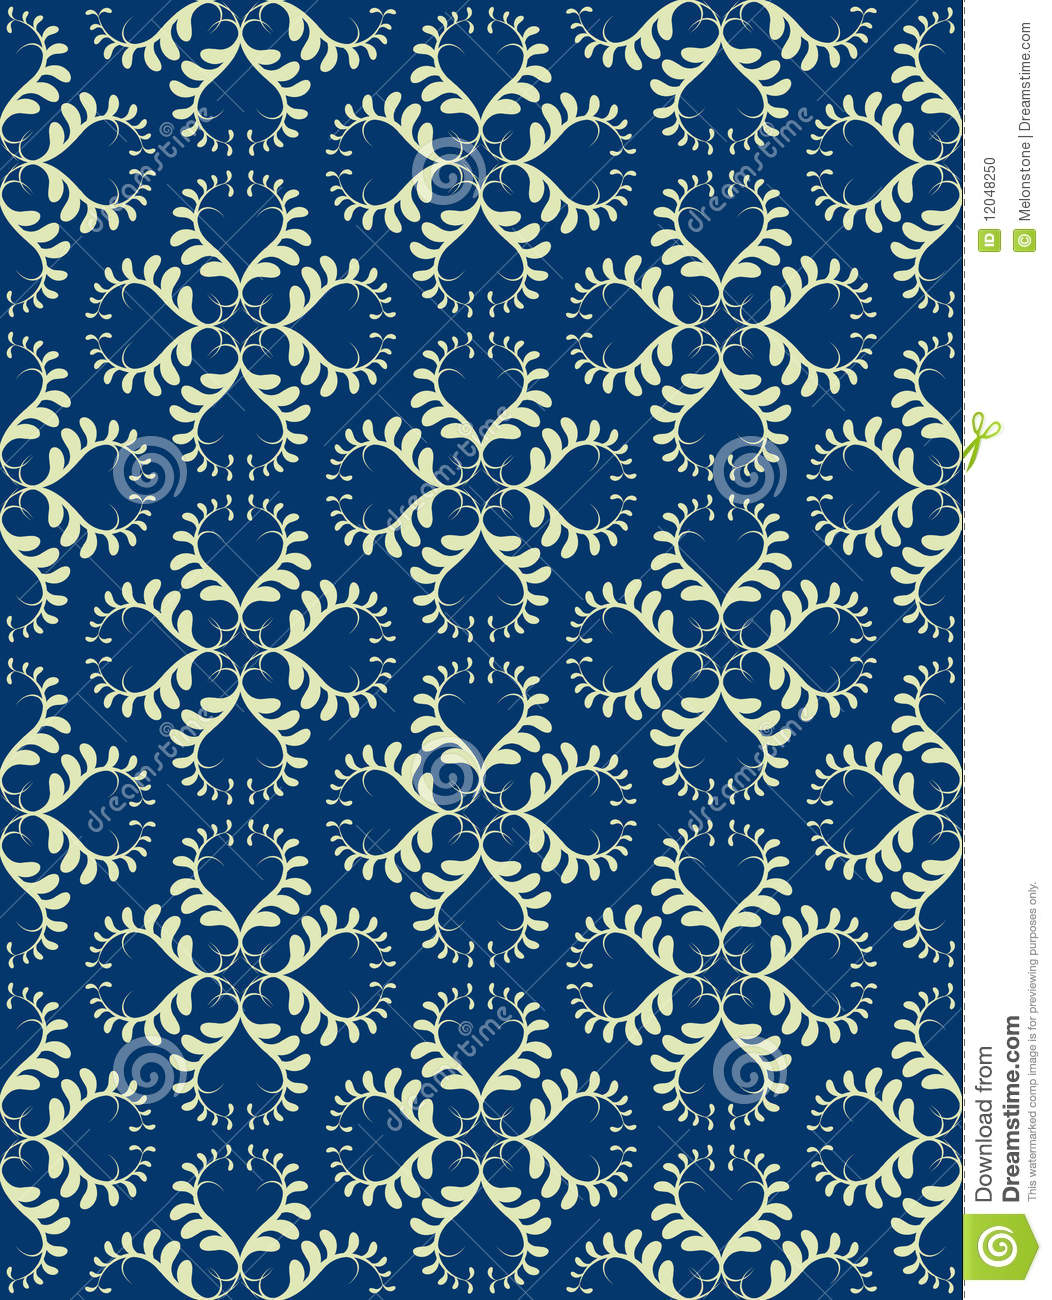 Royal Blue and Silver Background